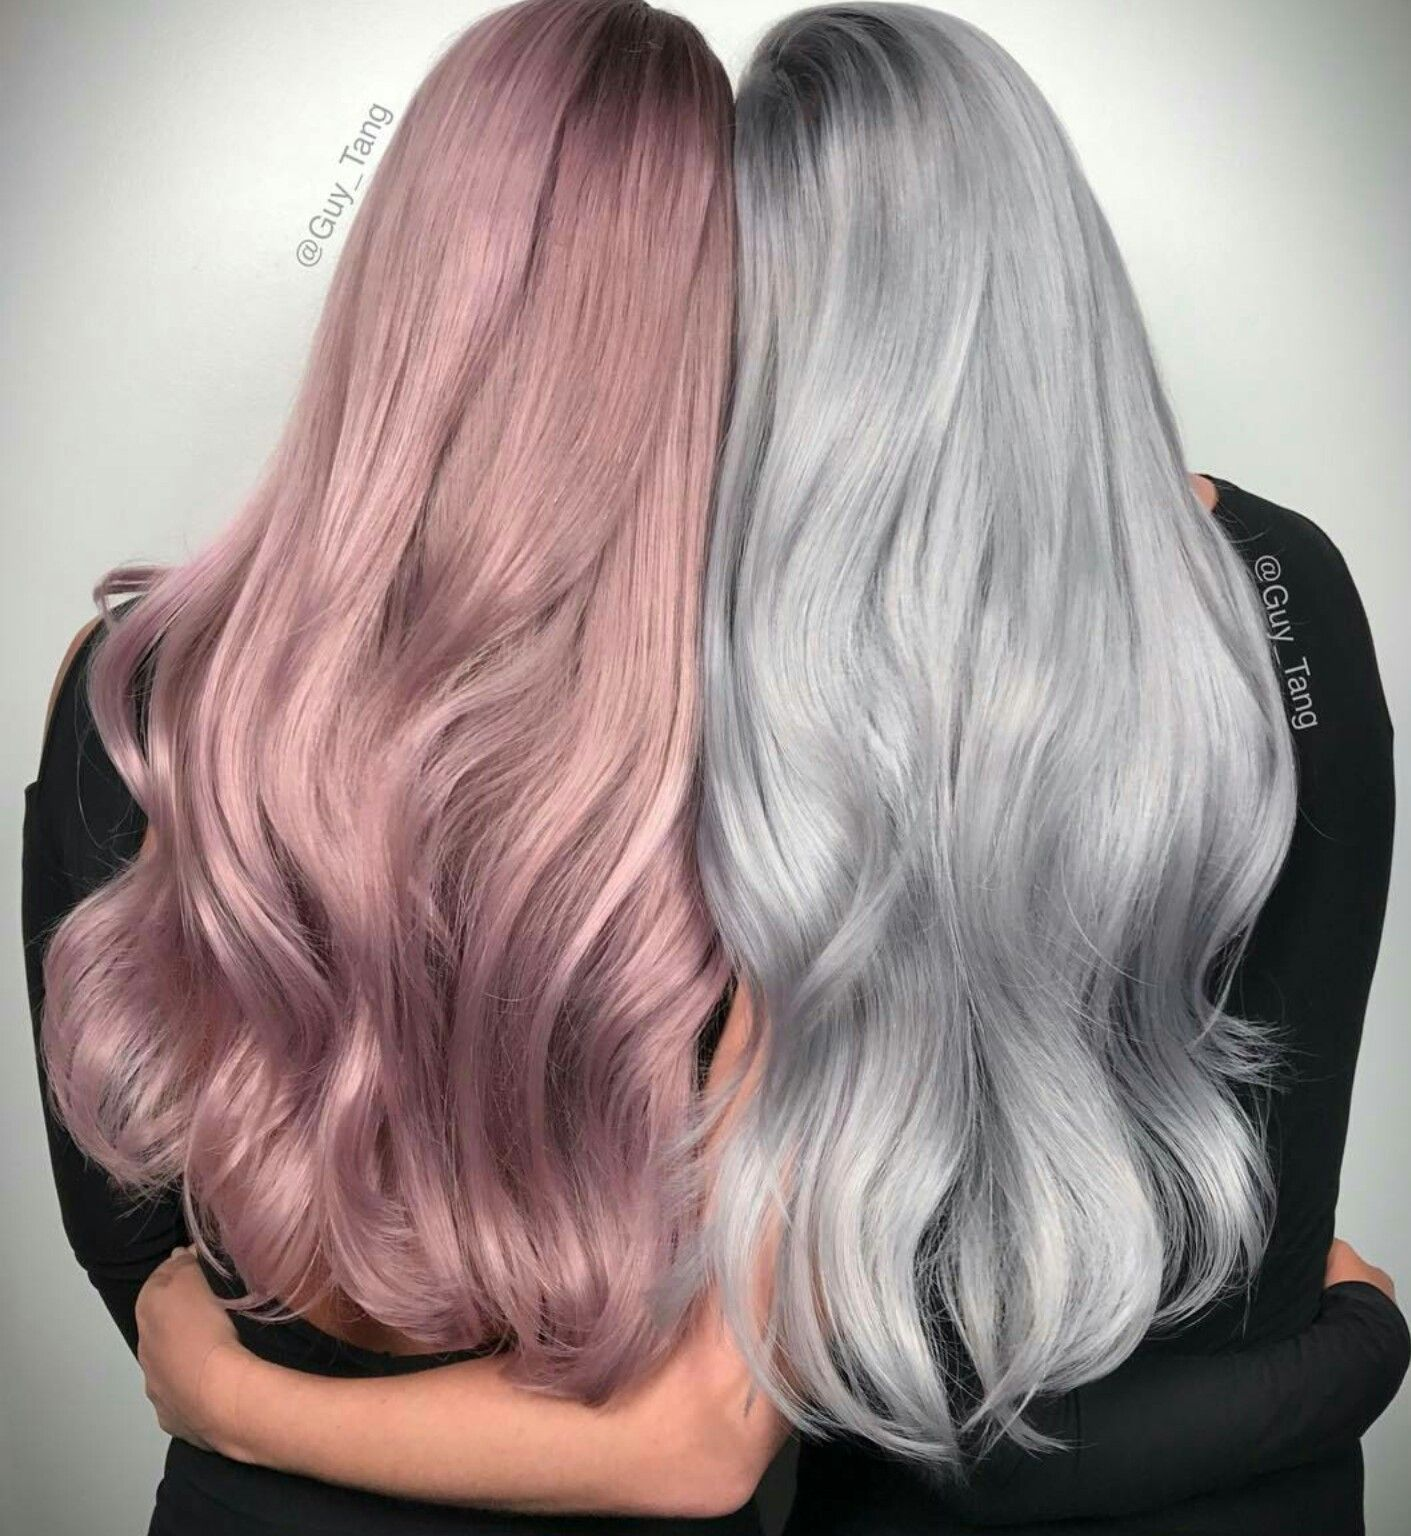 Pin By Bts A R M Y Forever On Hair Hair Color Pastel Grey Hair Wig Hair Color Shades